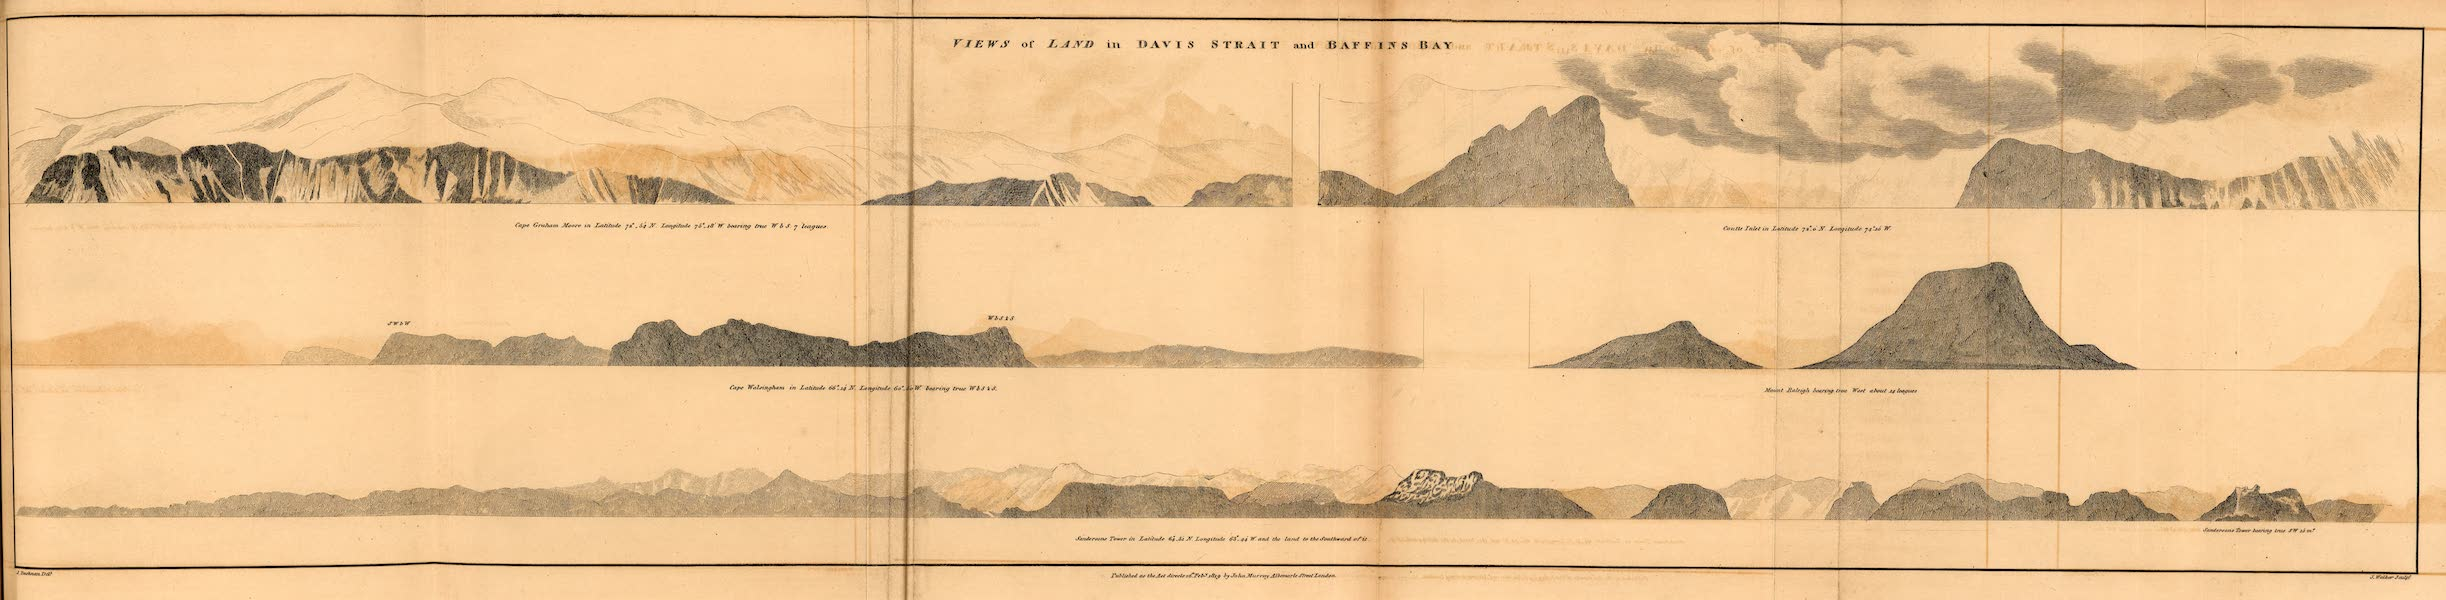 A Voyage of Discovery - Views of Land in Davis Strait and Baffin's Bay (1819)